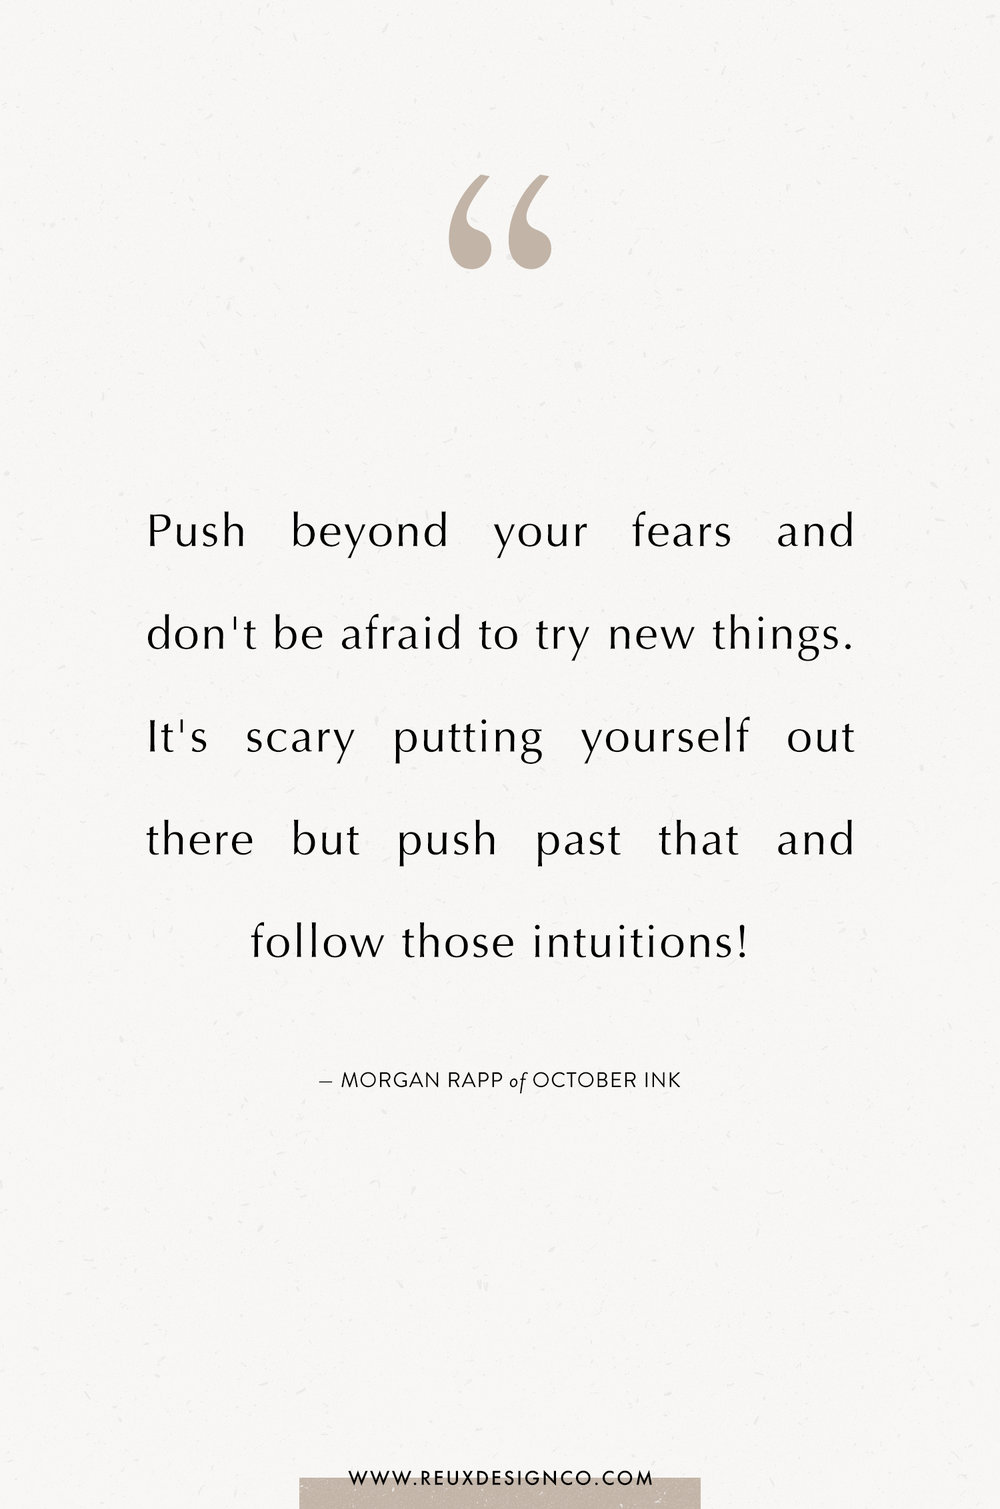 Branding + Business Tips from Morgan Rapp of October Ink on the Reux Design Co. blog | positive affirmations, quotes on energy, quotes on abundance, affirmations on creativity, affirmations for women, affirmations for entrepreneurs, words to live by, build a sustainable business you love